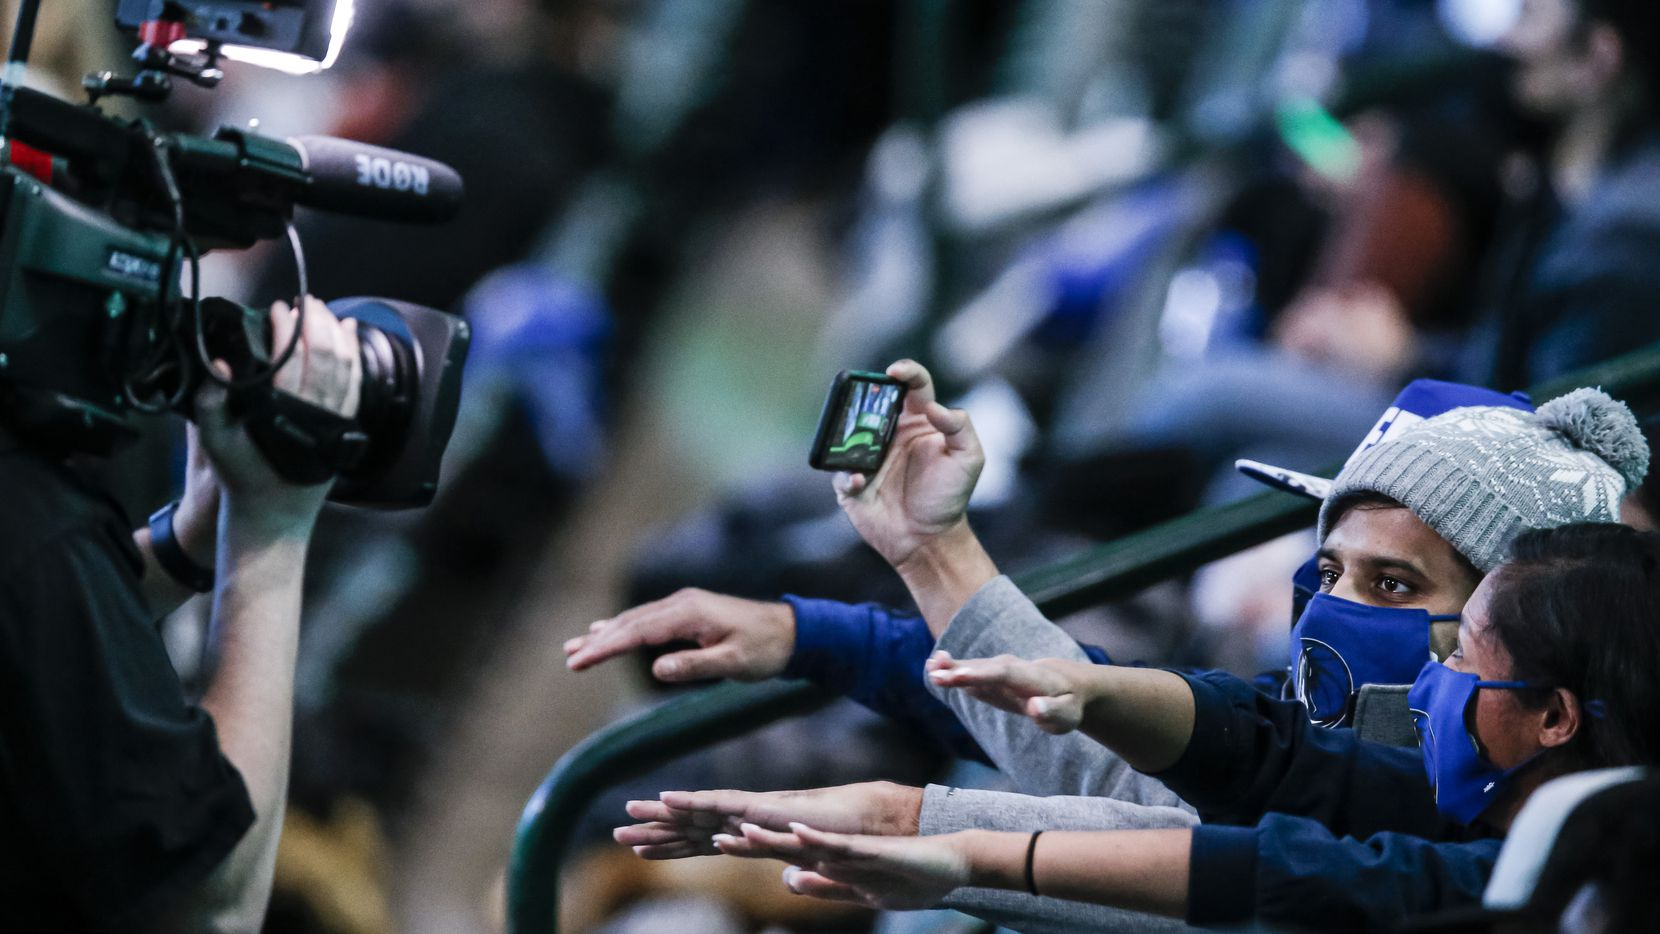 Fans, consisting mostly of healthcare workers, dance for the fan cam during a game between the Pelicans and Mavericks in Dallas on Friday, Feb. 12, 2021.